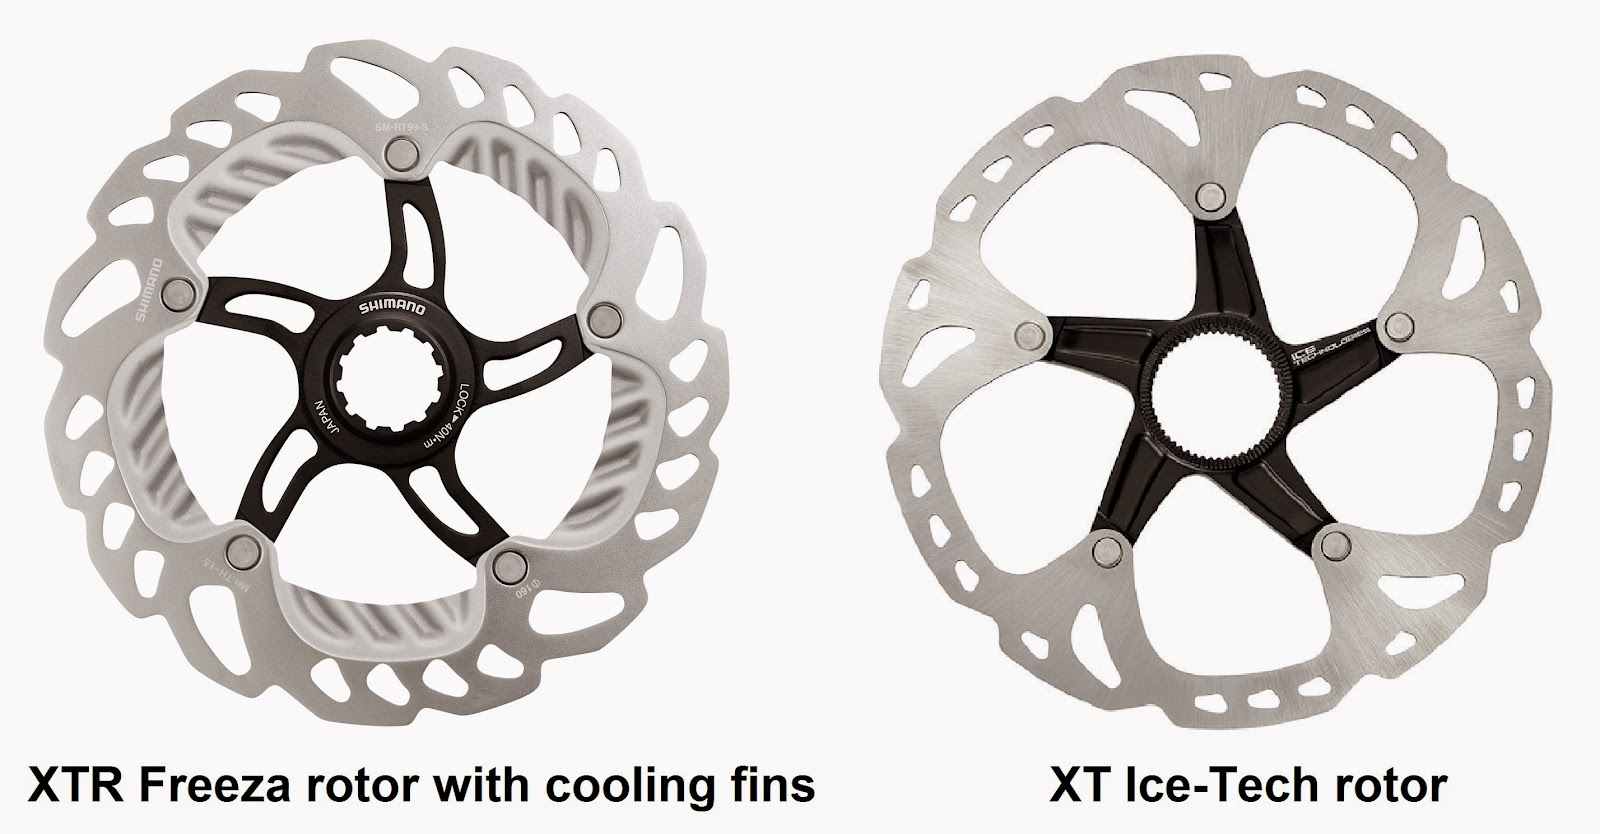 XTR Freeza rotor and XT Ice-Tech rotor